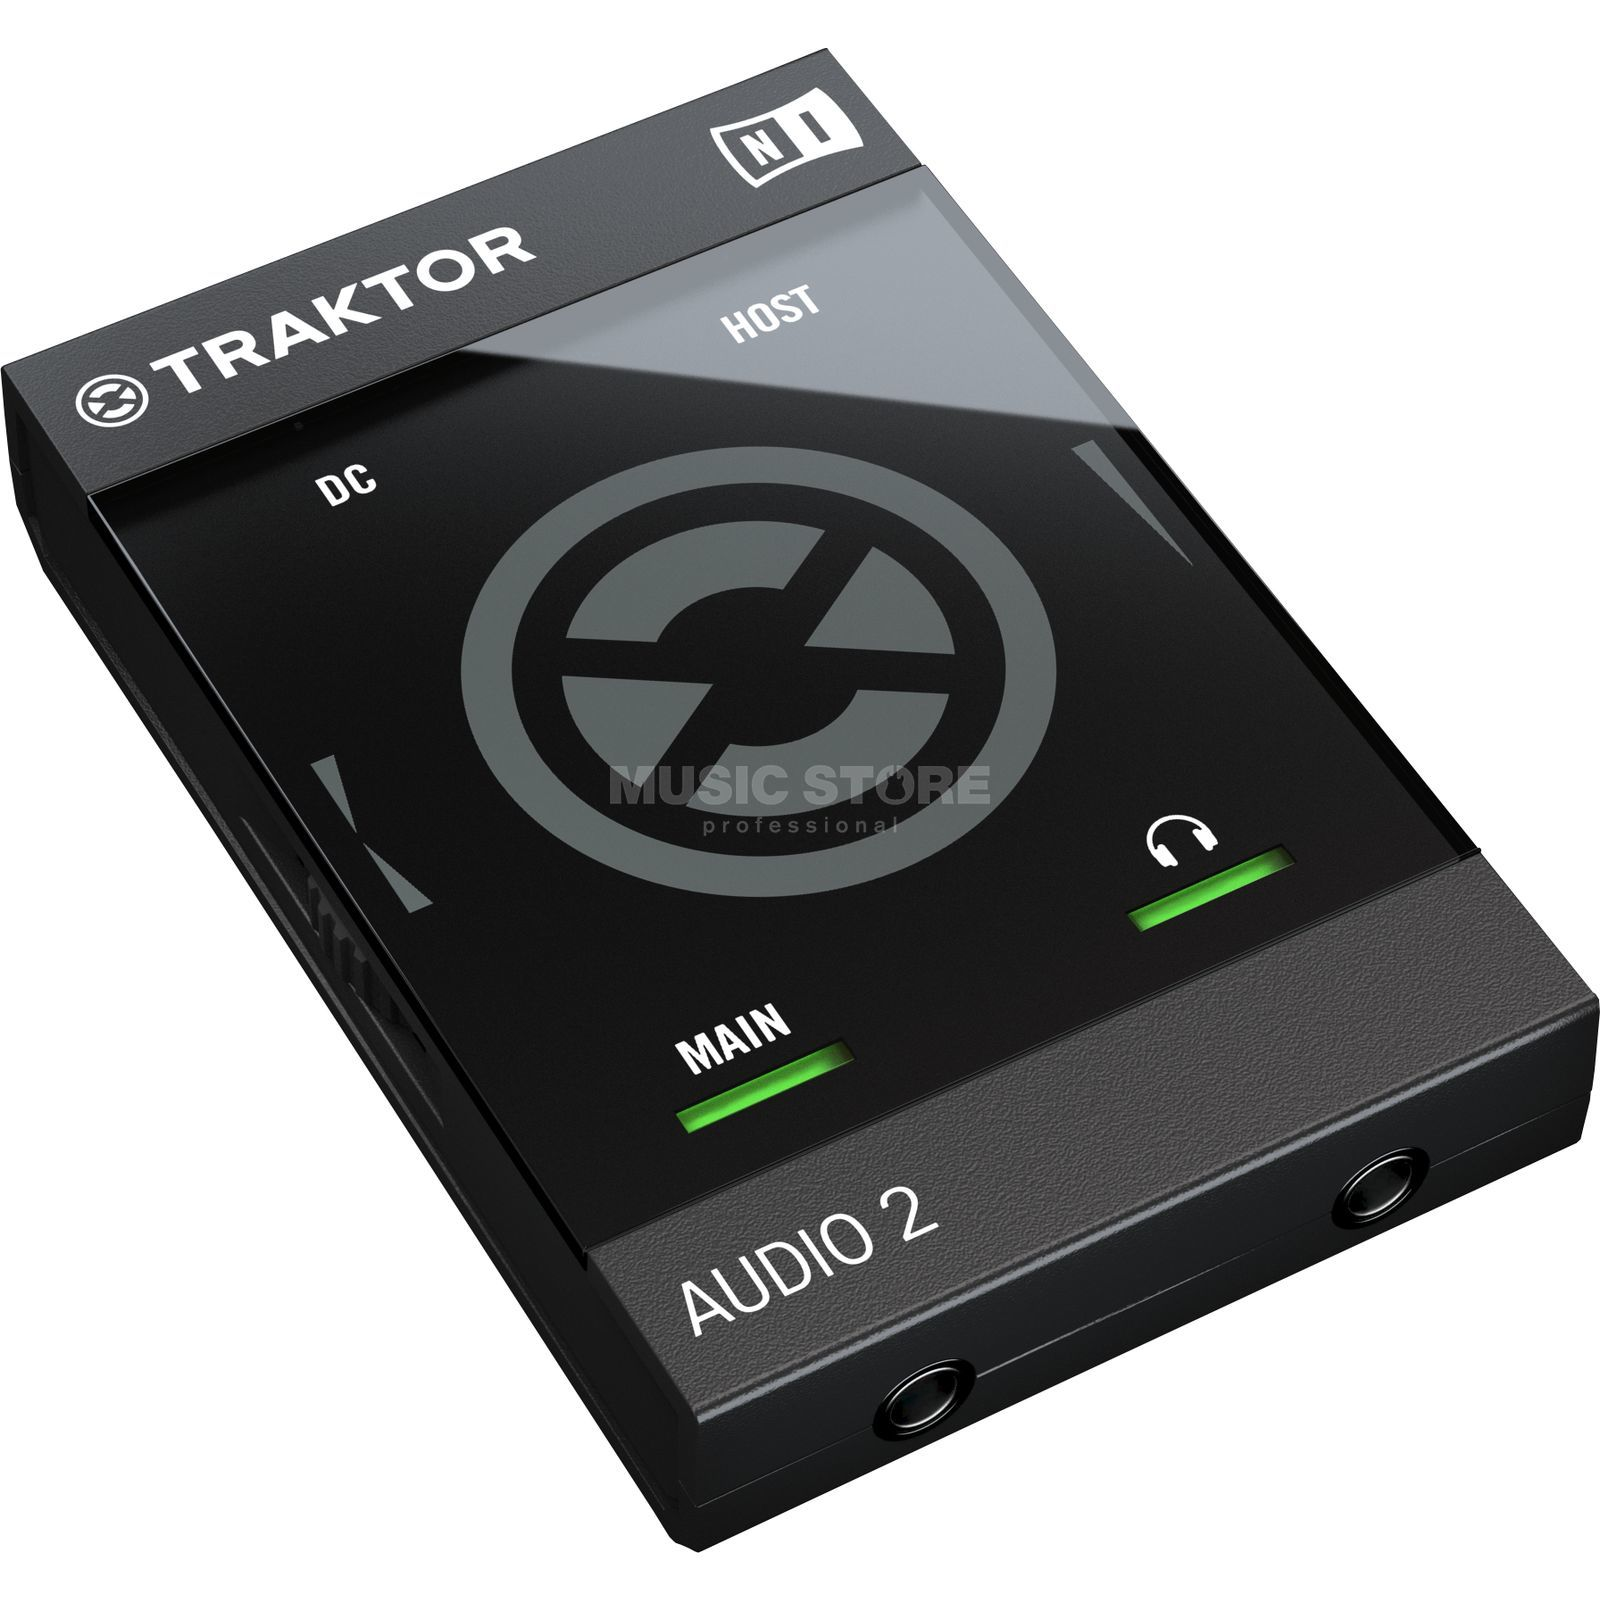 Native Instruments TRAKTOR Audio 2 MK2  Product Image